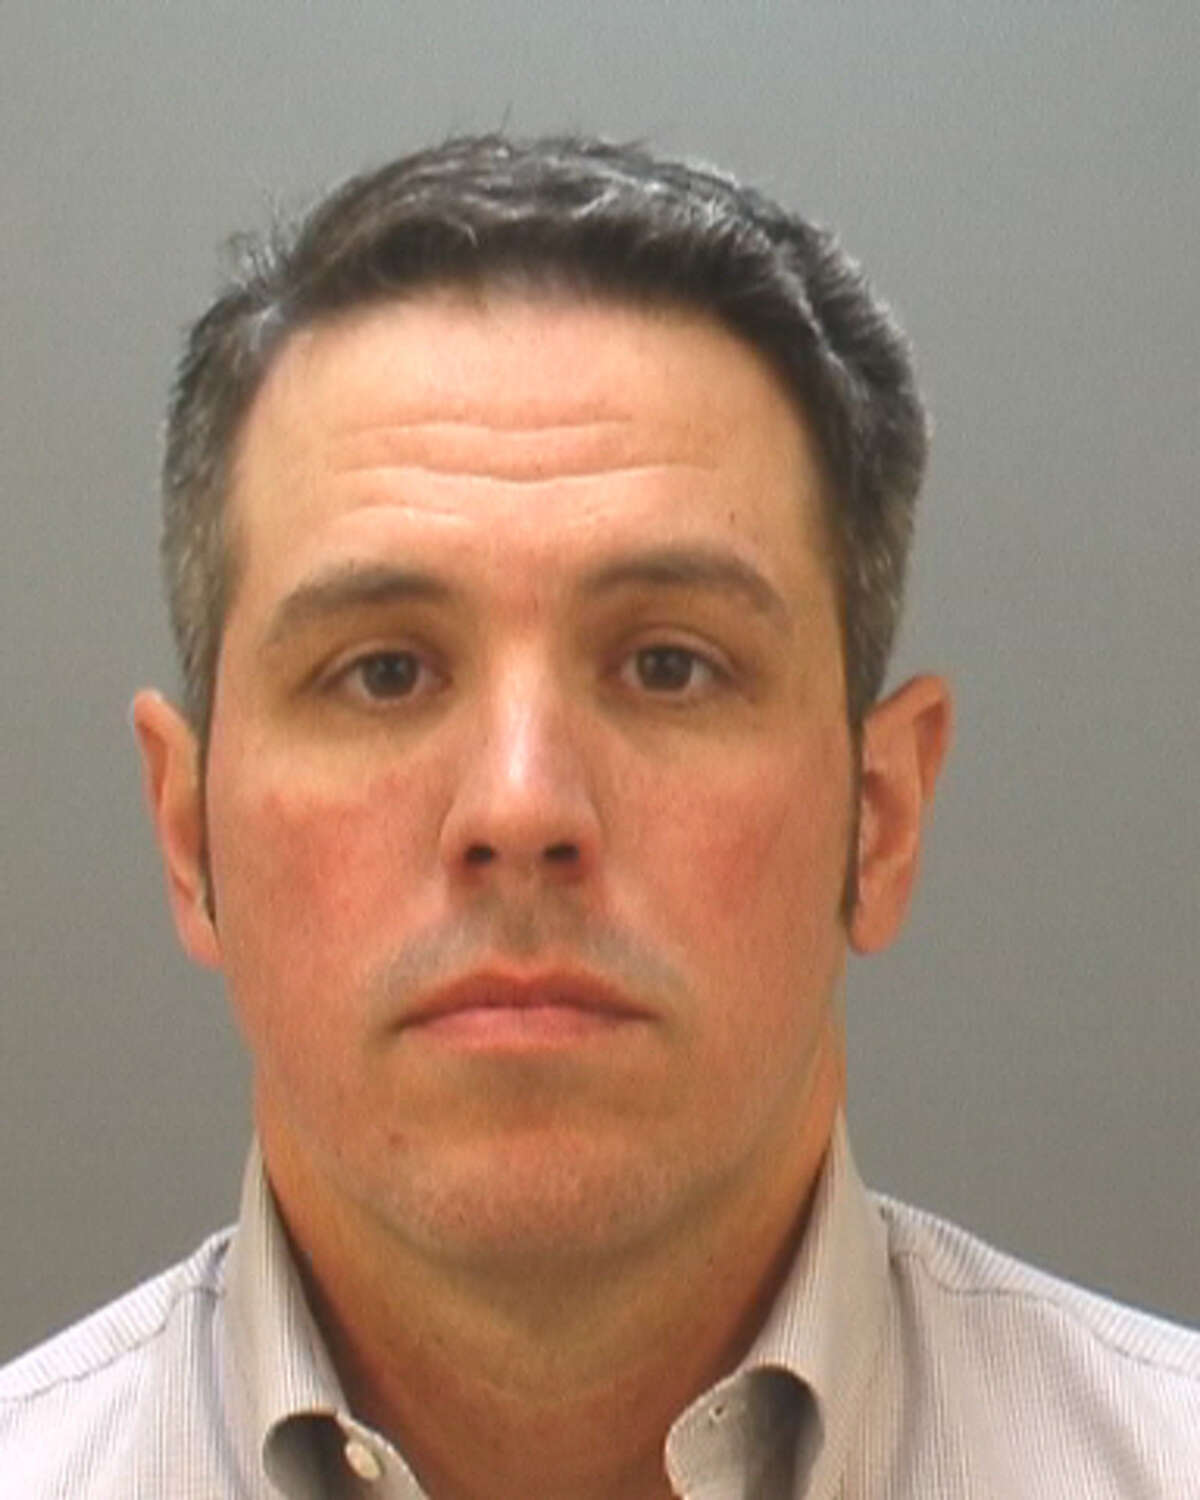 San Marcos police officer James Palermo who was arrested on charges of aggravated assault with serious bodily injury by a public servant, is seen in an undated booking mug provided Friday July 19, 2013 by the Hays County District Attorney's Office